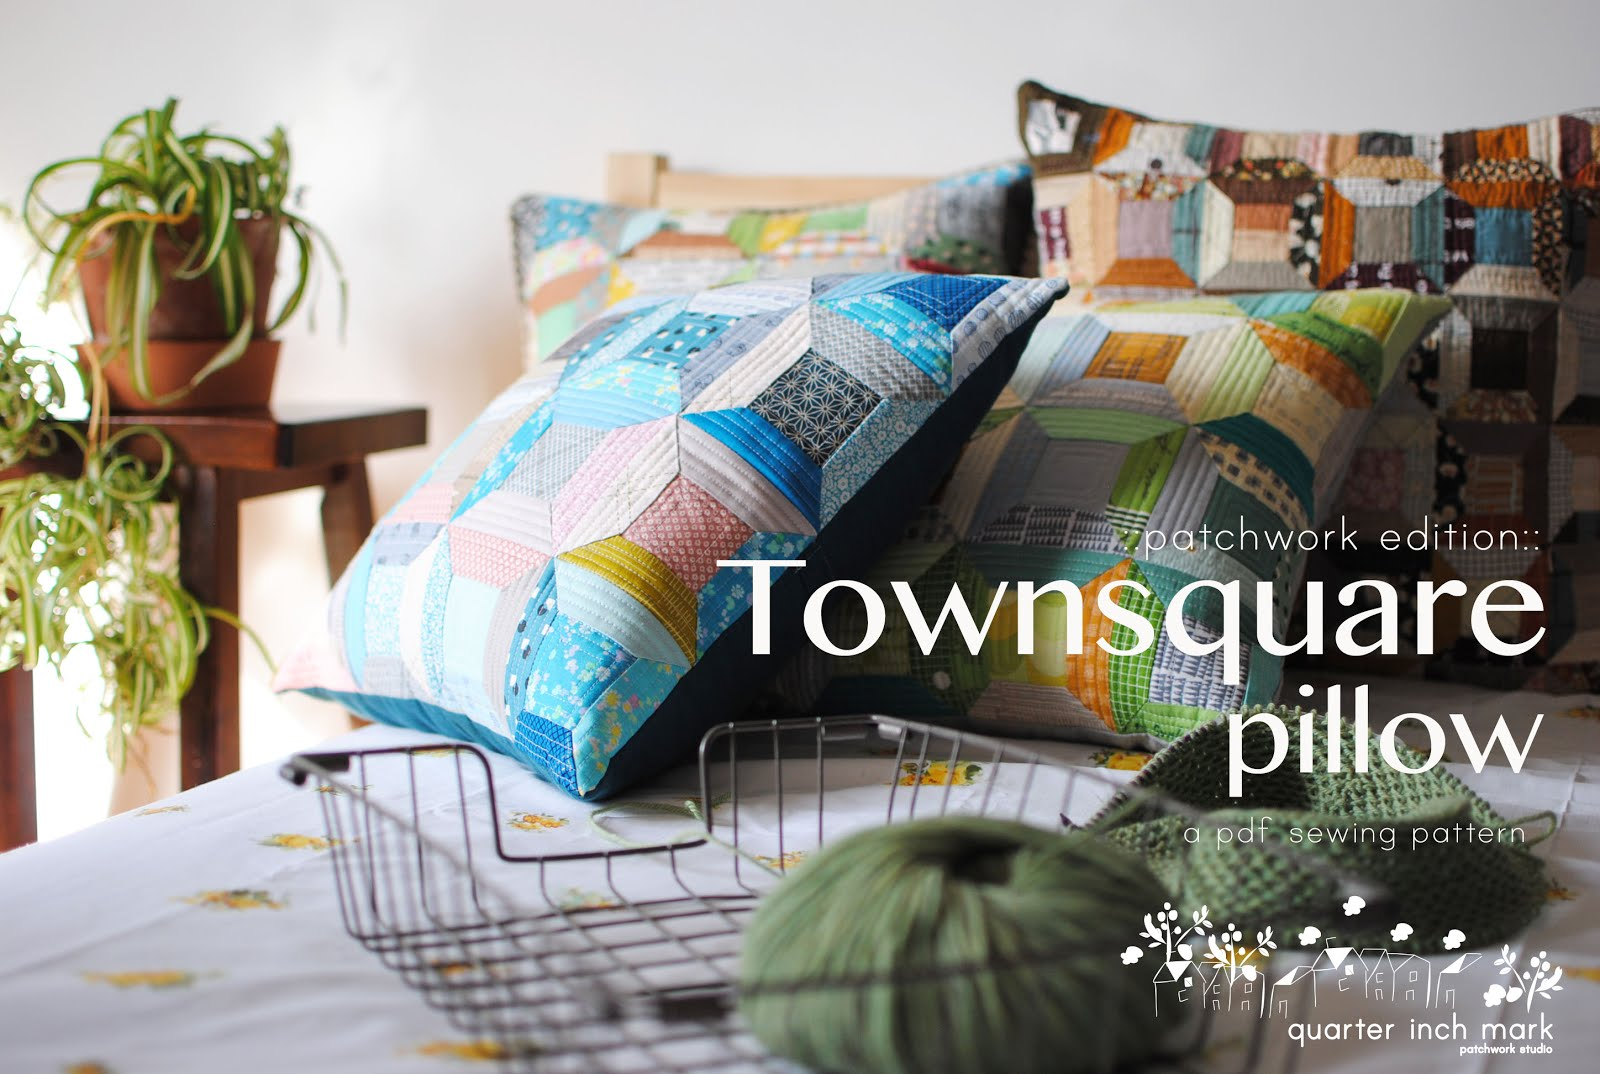 Townsquare Pillow Sewing Pattern